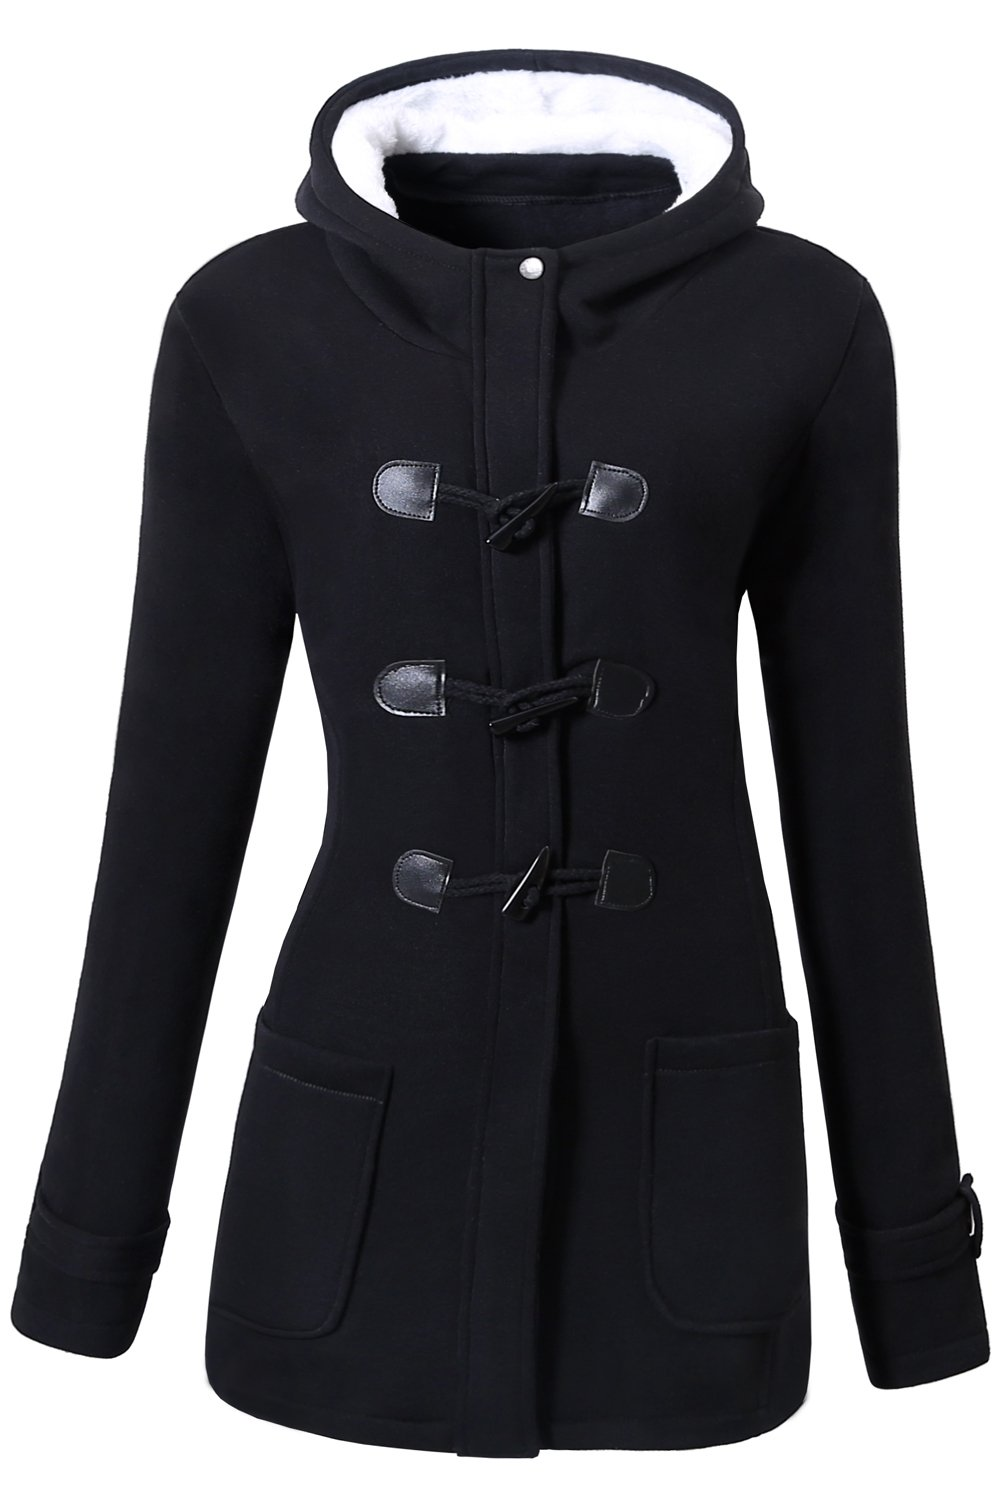 VOGRYE Womens Winter Fashion Outdoor Warm Wool Blended Classic Pea Coat Jacket Black Large